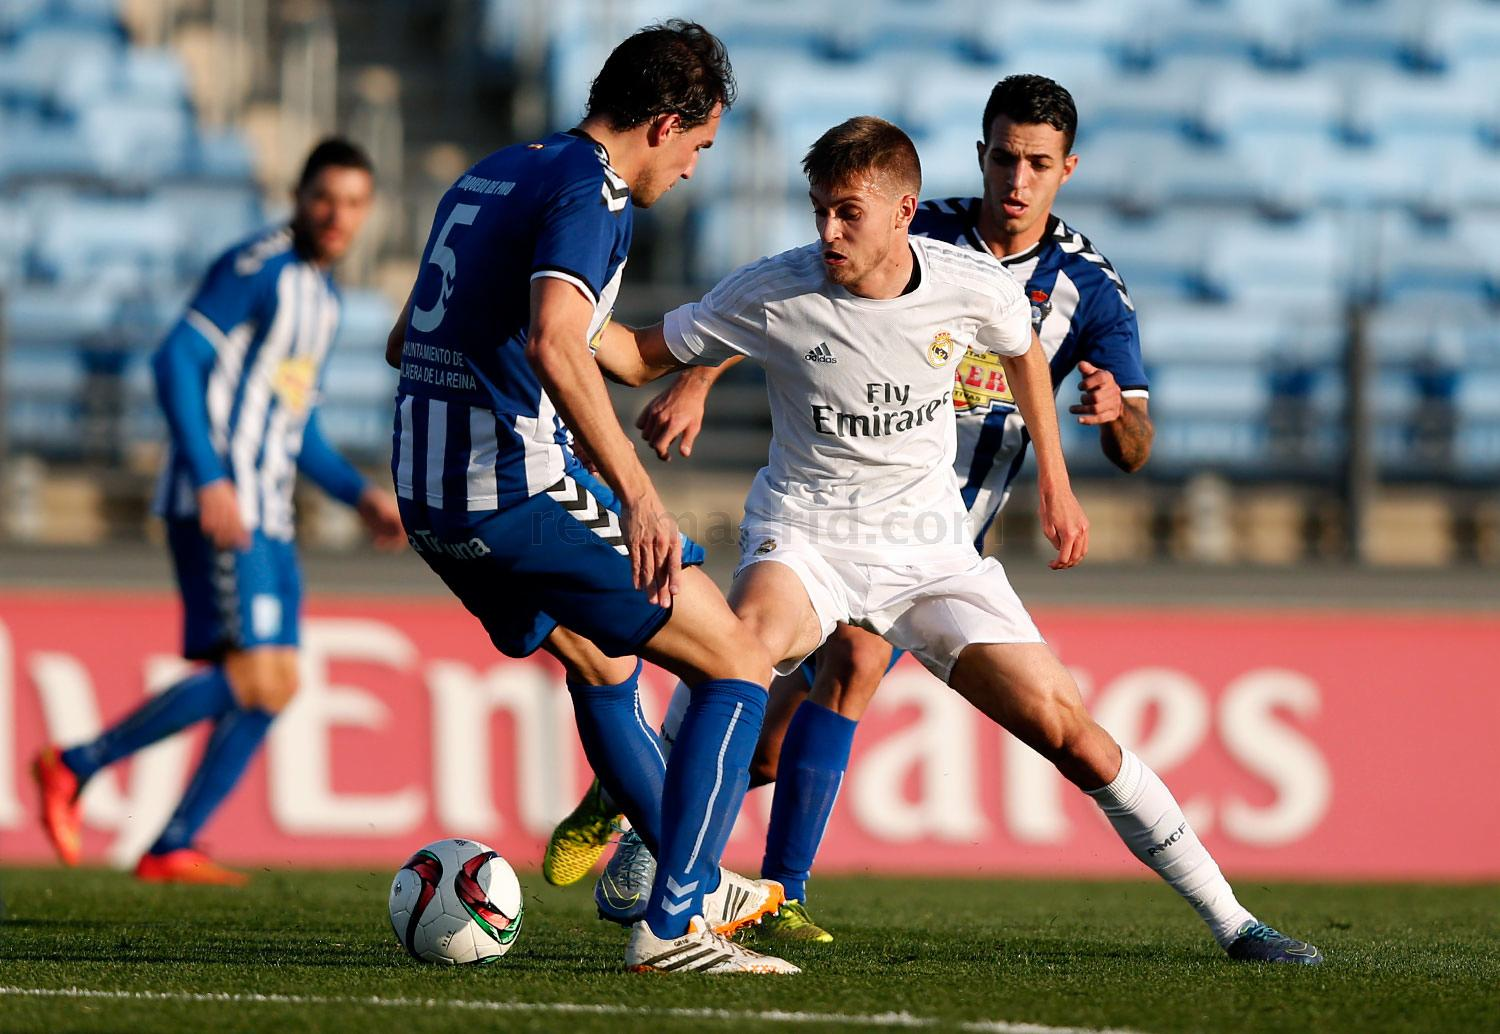 Real Madrid - Real Madrid Castilla - Talavera de la Reina - 19-12-2015